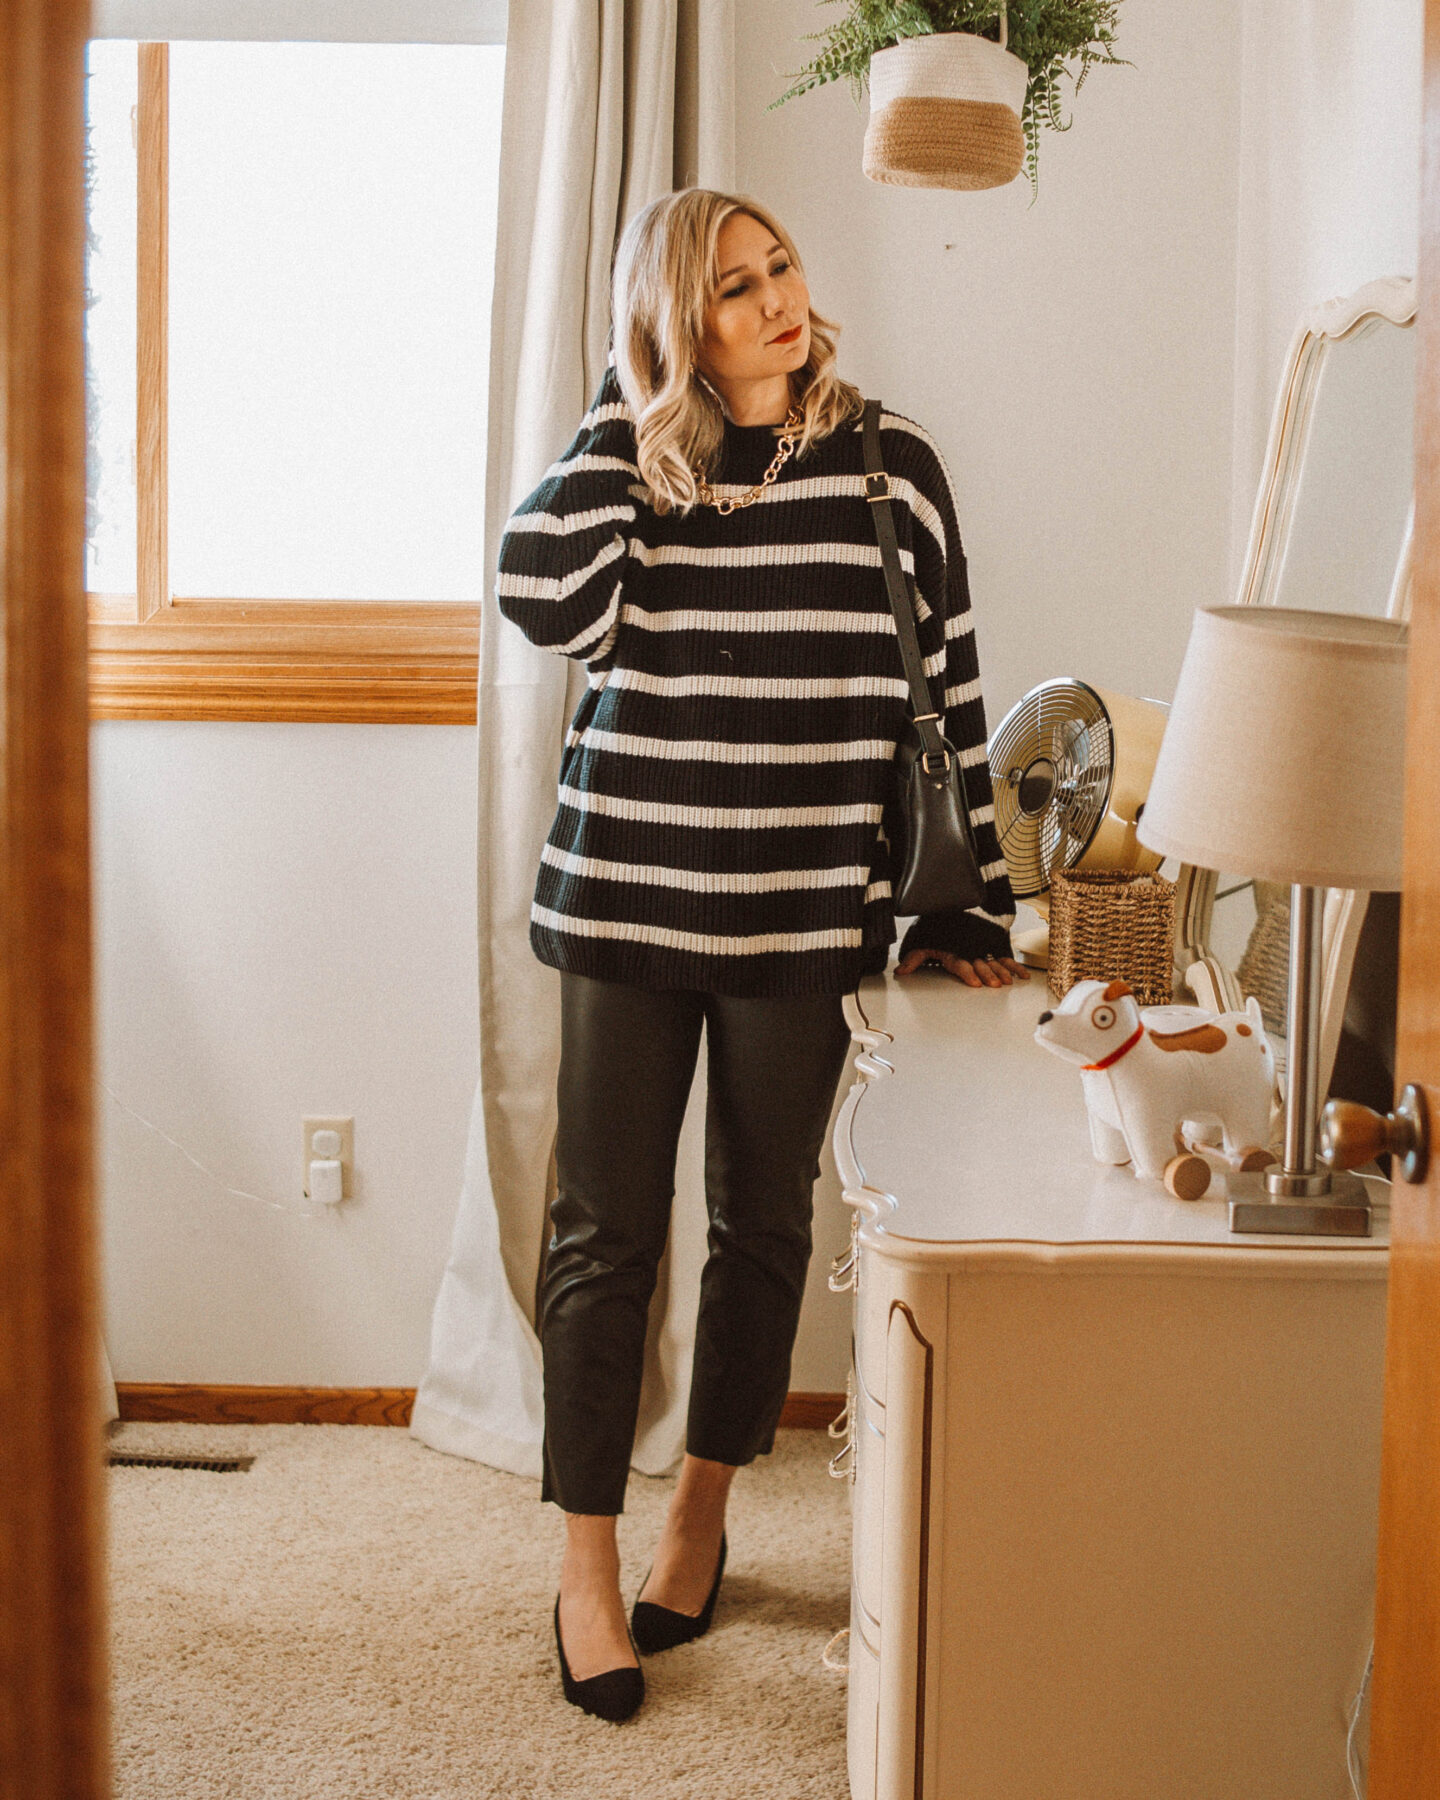 3 Holiday Looks with Coated Jeans, Striped Sweater, Breton Stripes, Black Kitten Heels